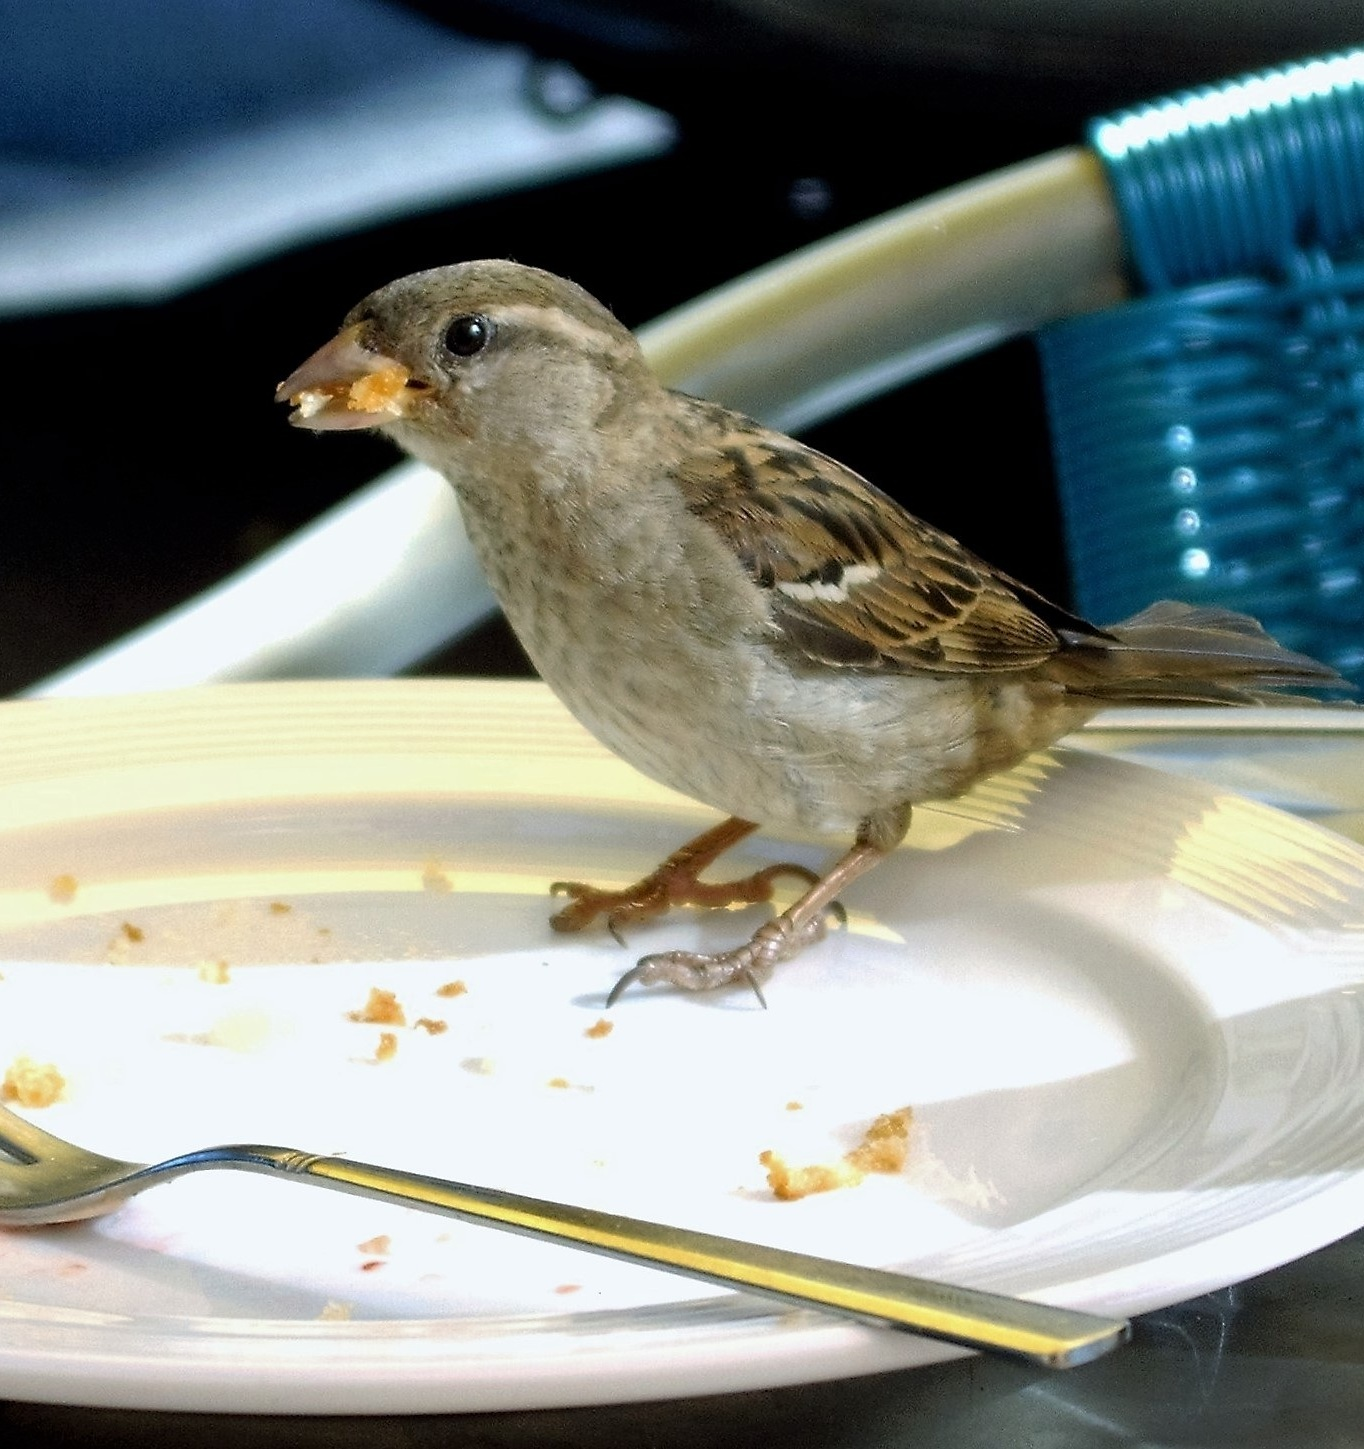 Picture of a sparrow foraging for food.